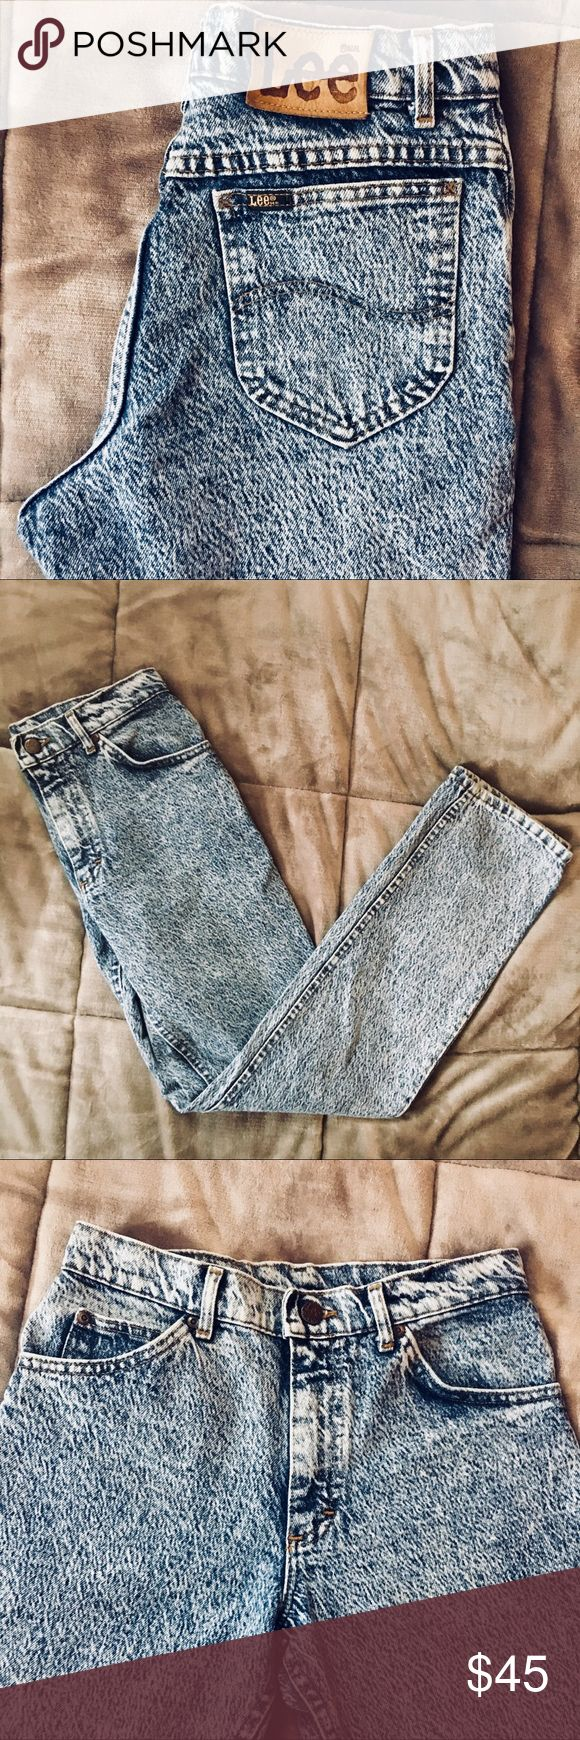 Vintage Acid Wash Lee Jeans Amazing condition!! Like, seriously unbelievable vintage condition. There are really no flaws to note... perfect acid wash denim, thick and excellent quality, tapered leg, no rips or tears or stains. 26in waist. Let me know if you have any questions!! Lee Jeans